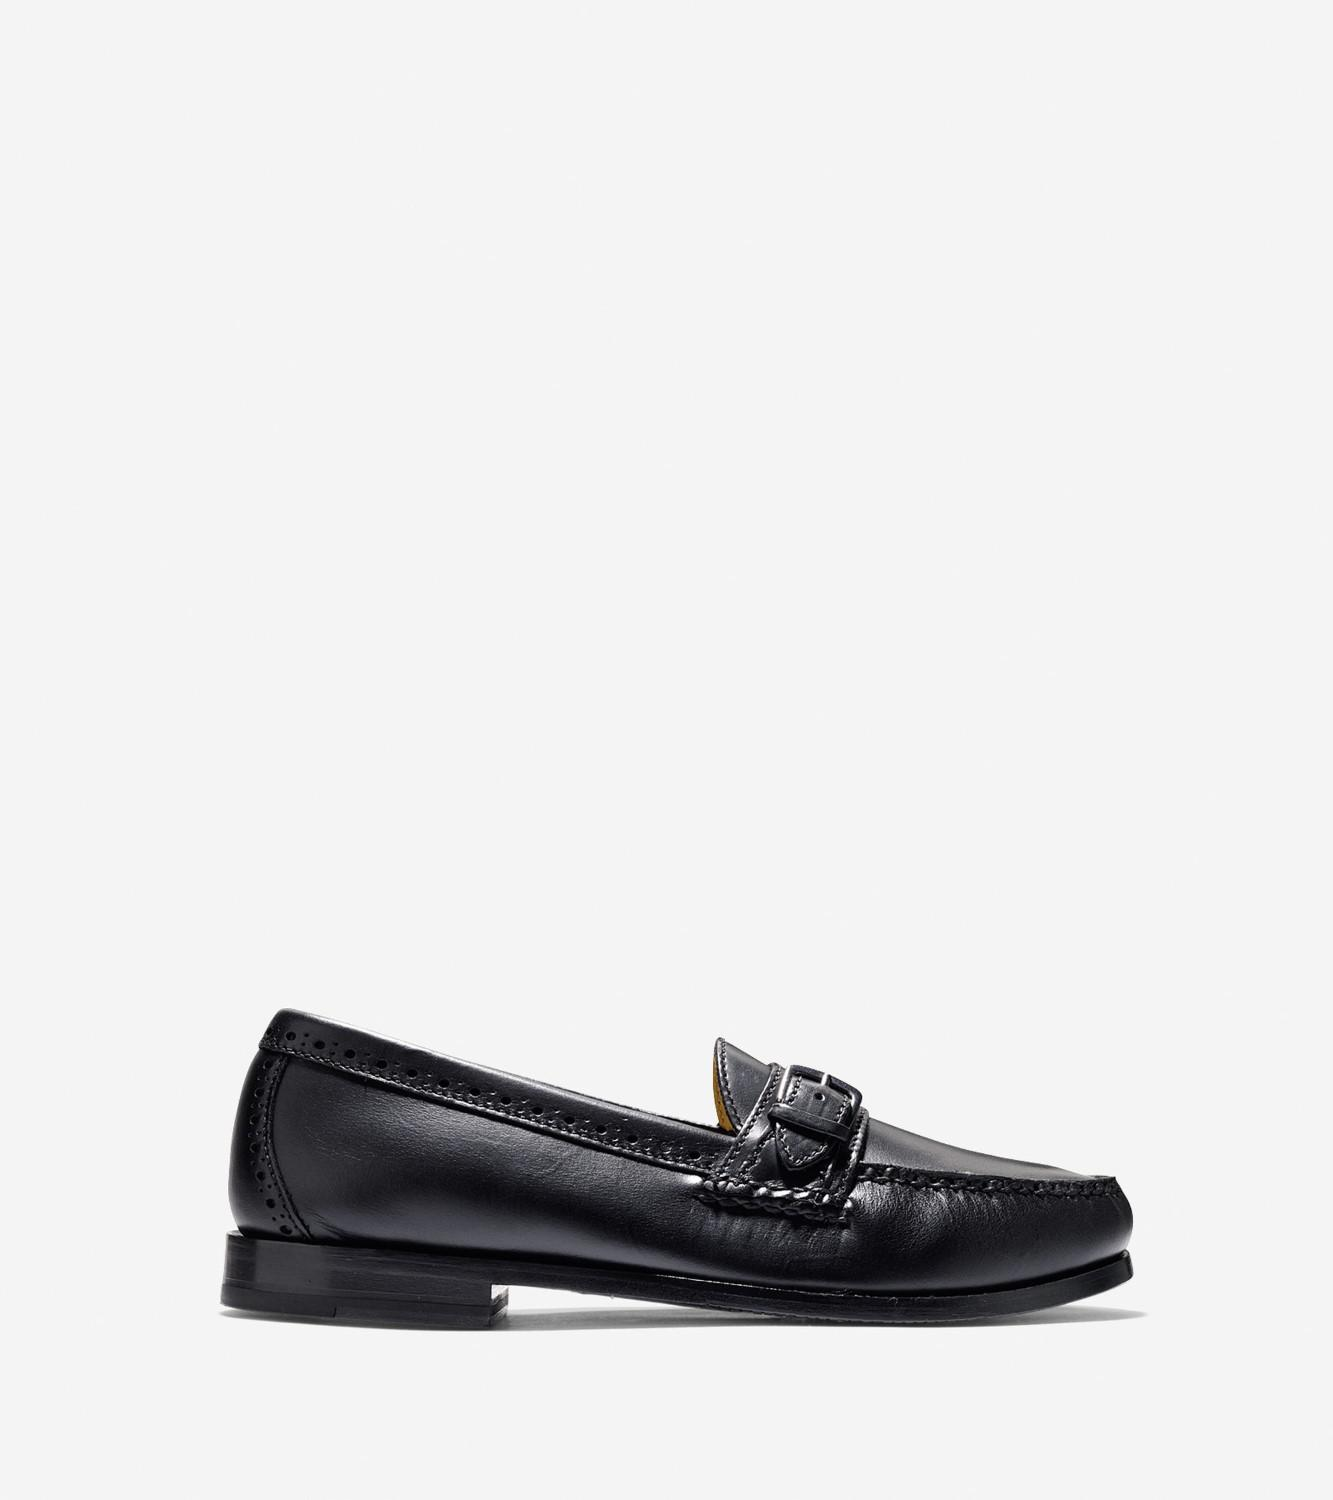 340d7e35c7d Cole Haan - Black Mens Grand Pinch Casual Buckle Loafer Shoe for Men - Lyst